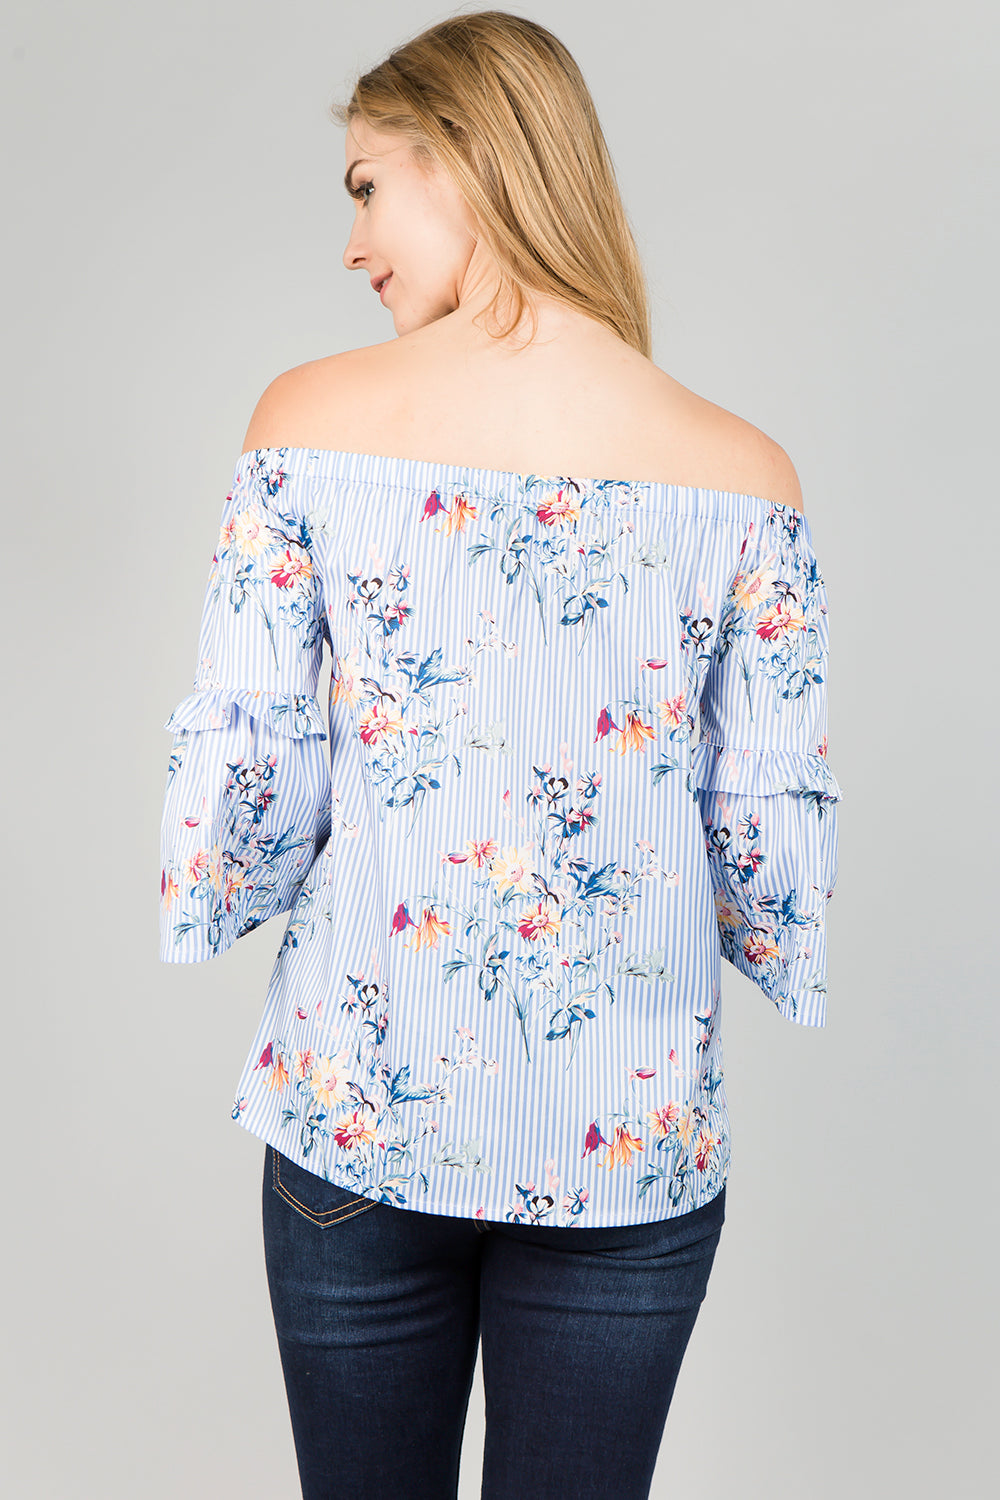 T2420 Striped Floral print off shoulder Top